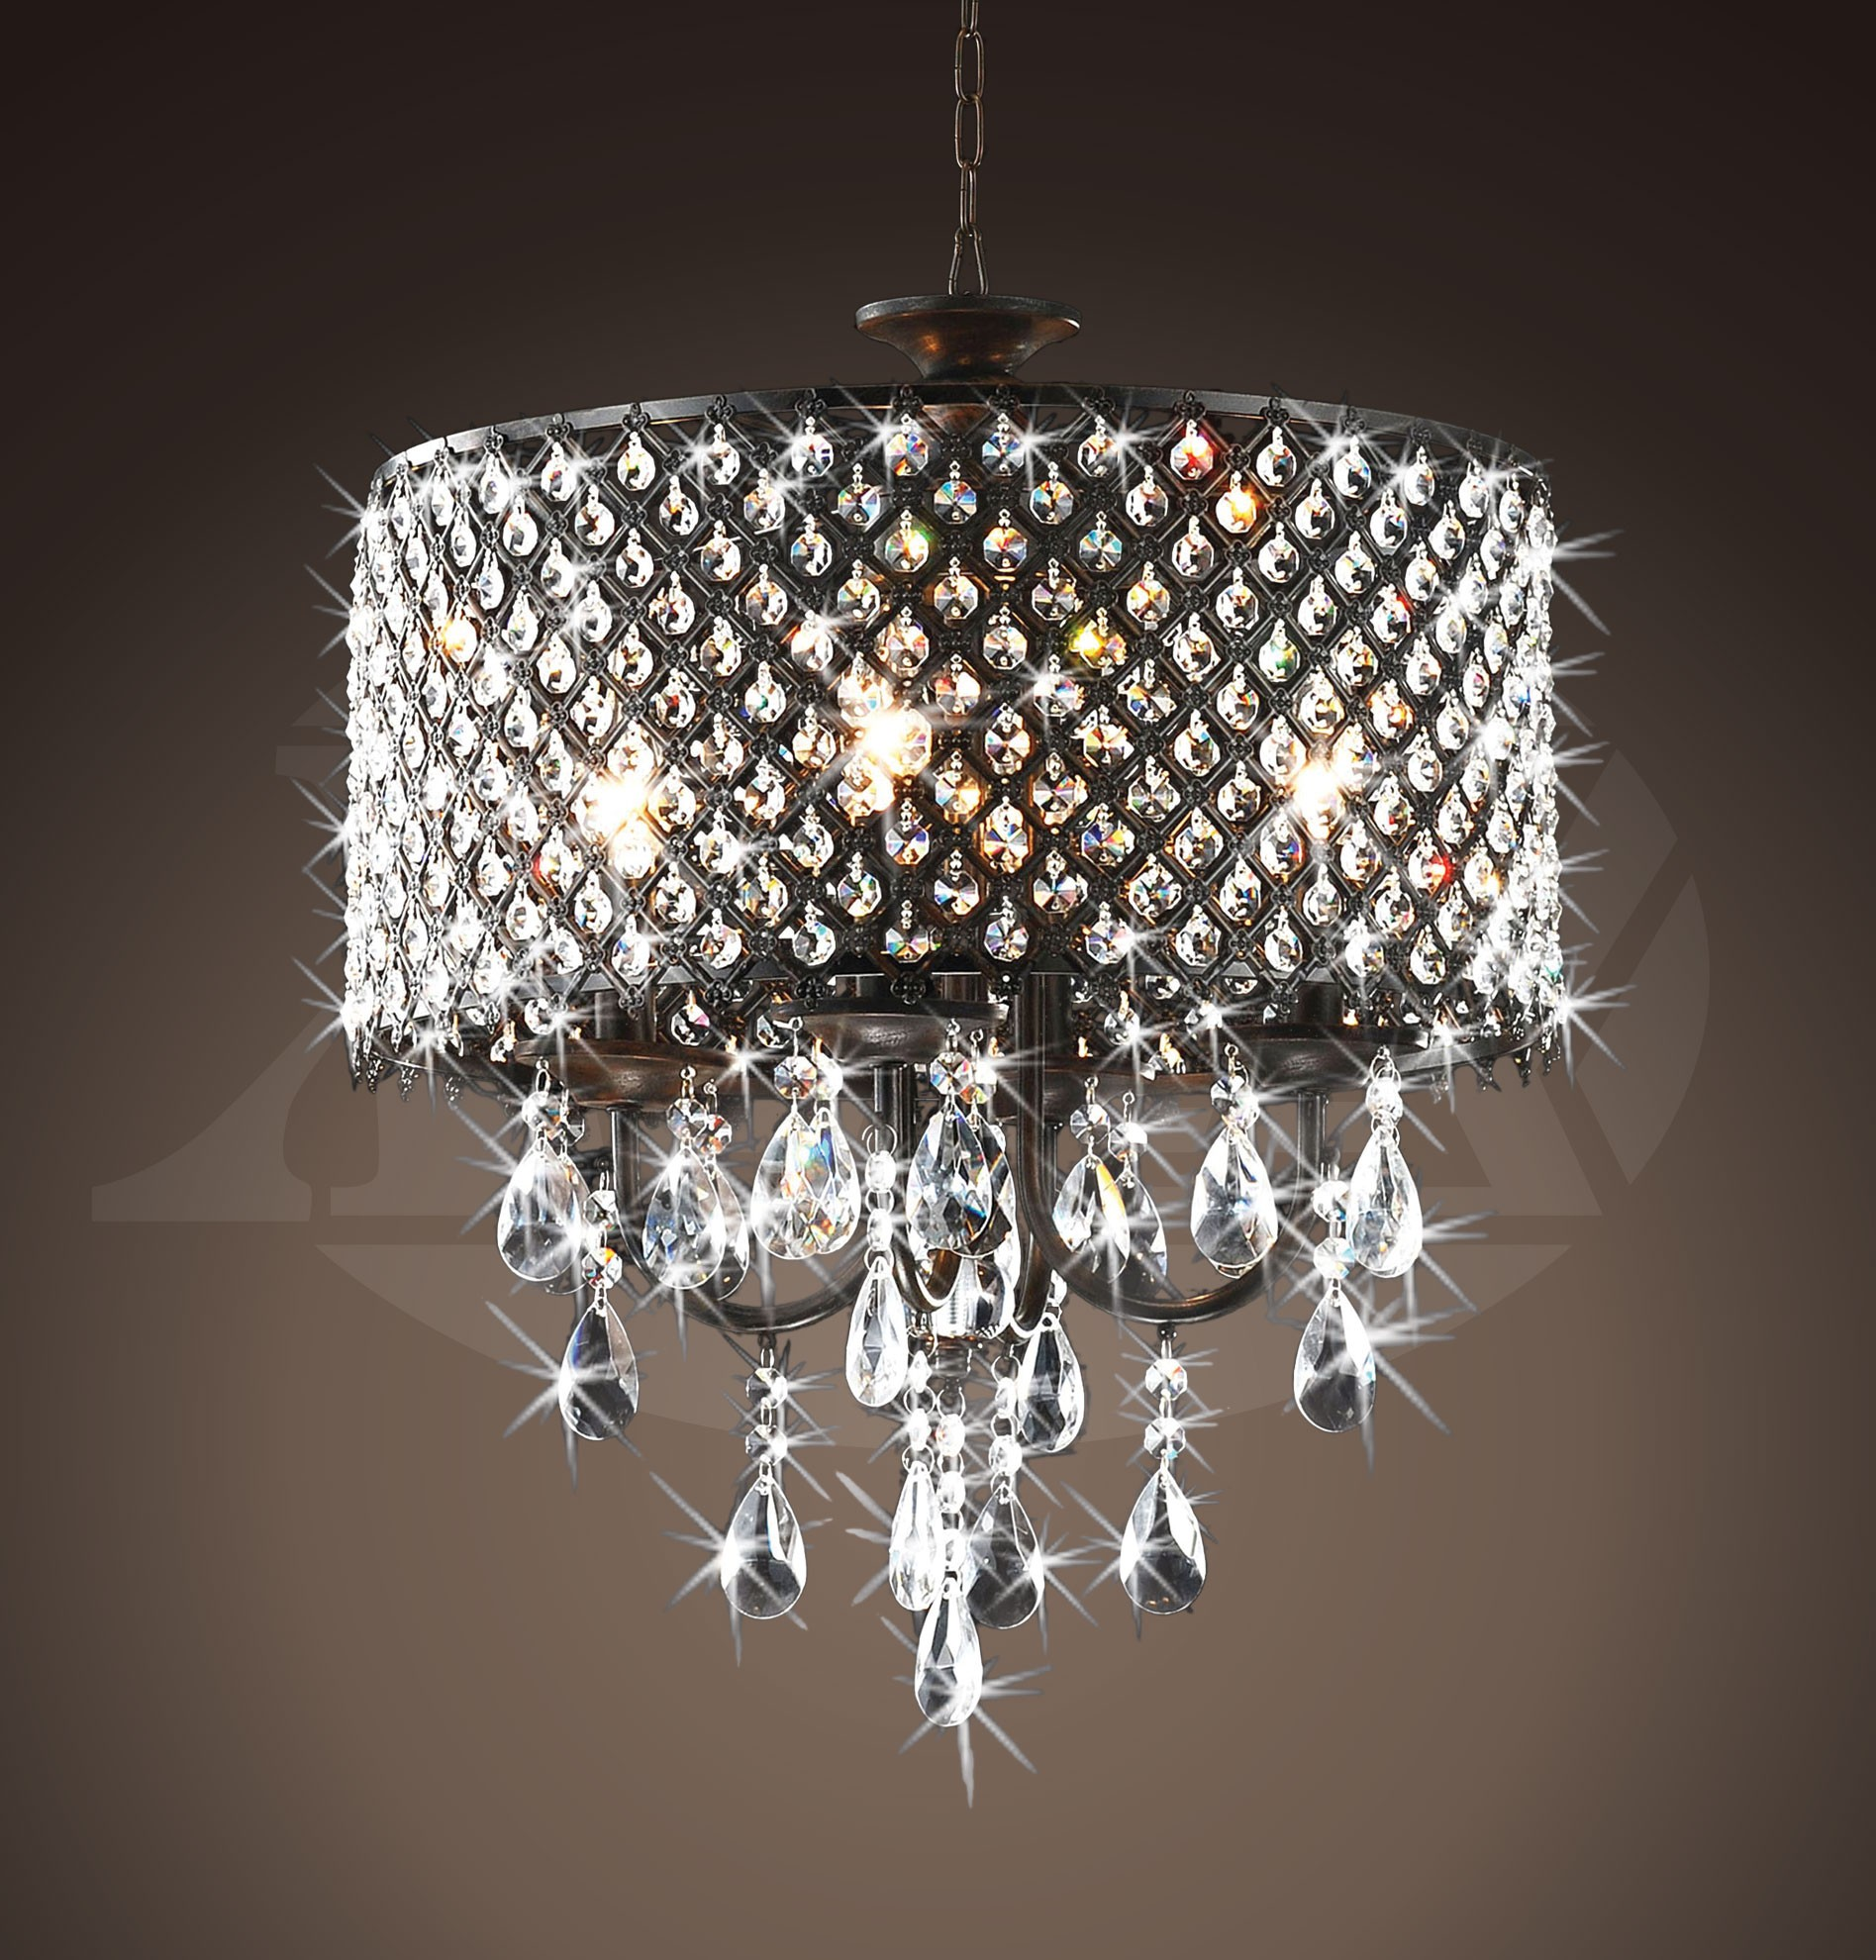 pendant ceiling lighting chandelier lamp modern for crystal room chandeliers from hanging item lustre living lights led cristal fixtures in